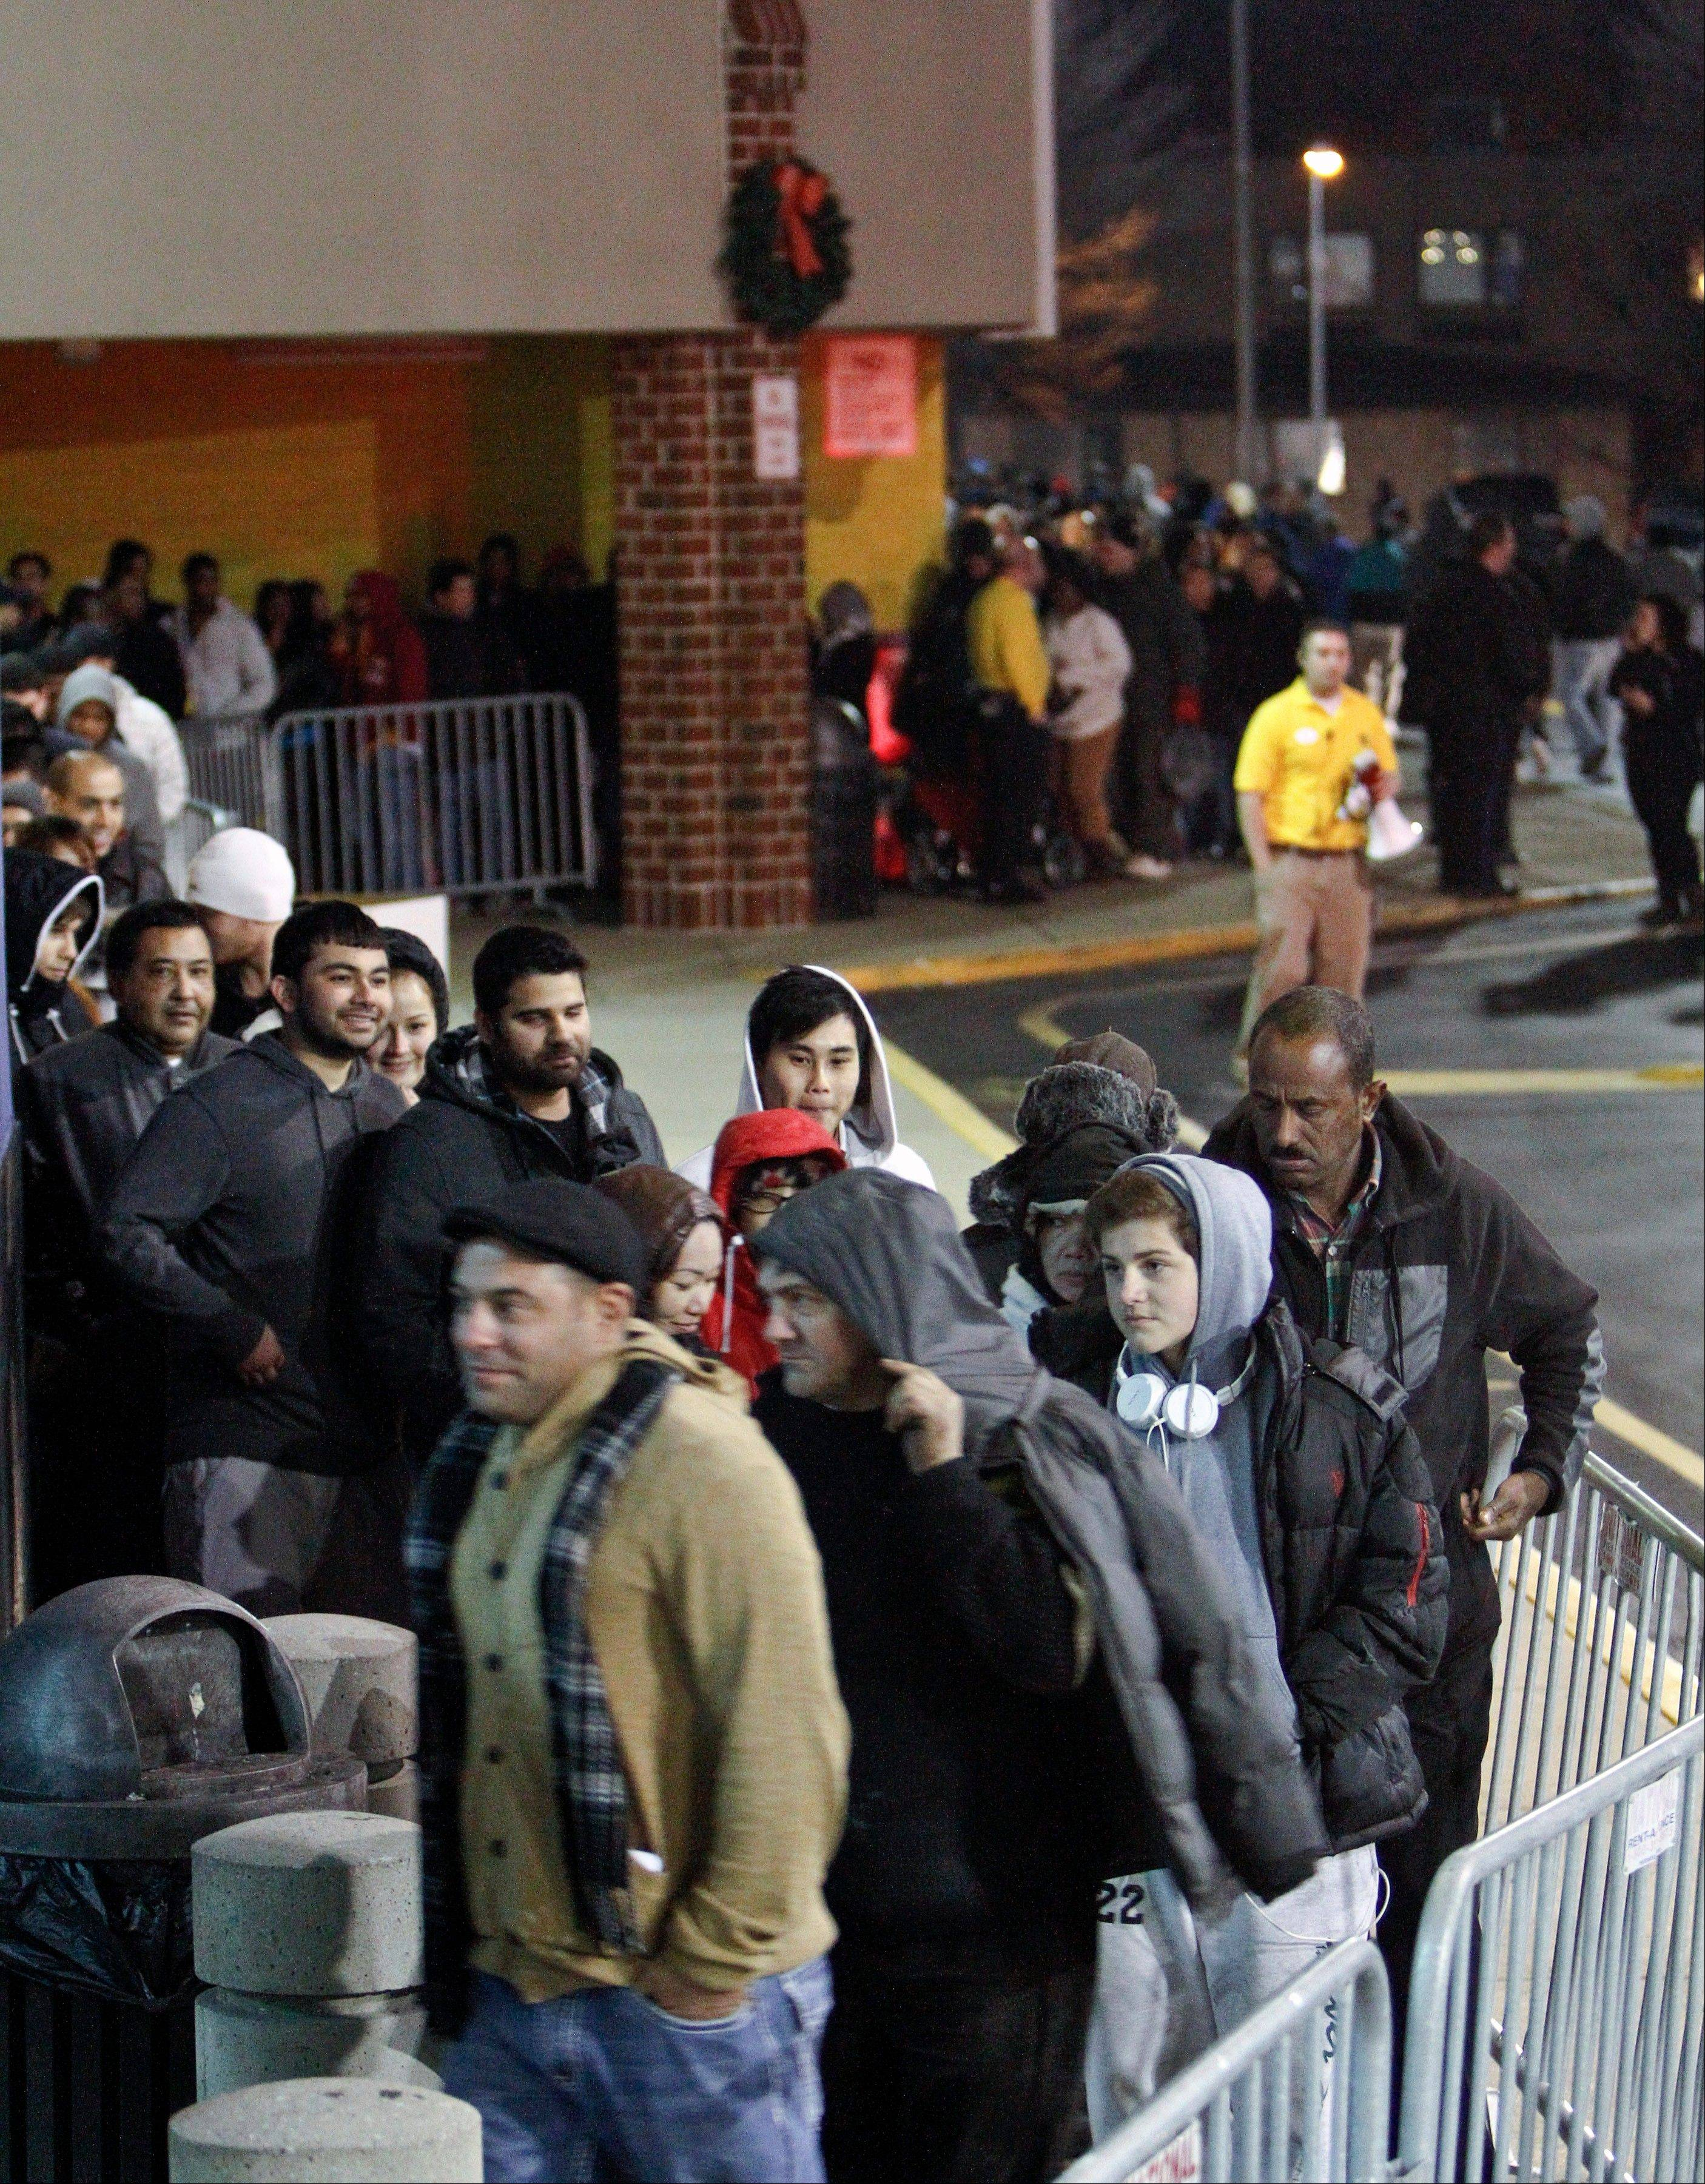 People wait in line, on Thursday Nov 22, 2012, for a Best Buy store in Northeast Philadelphia to open it's doors at midnight.